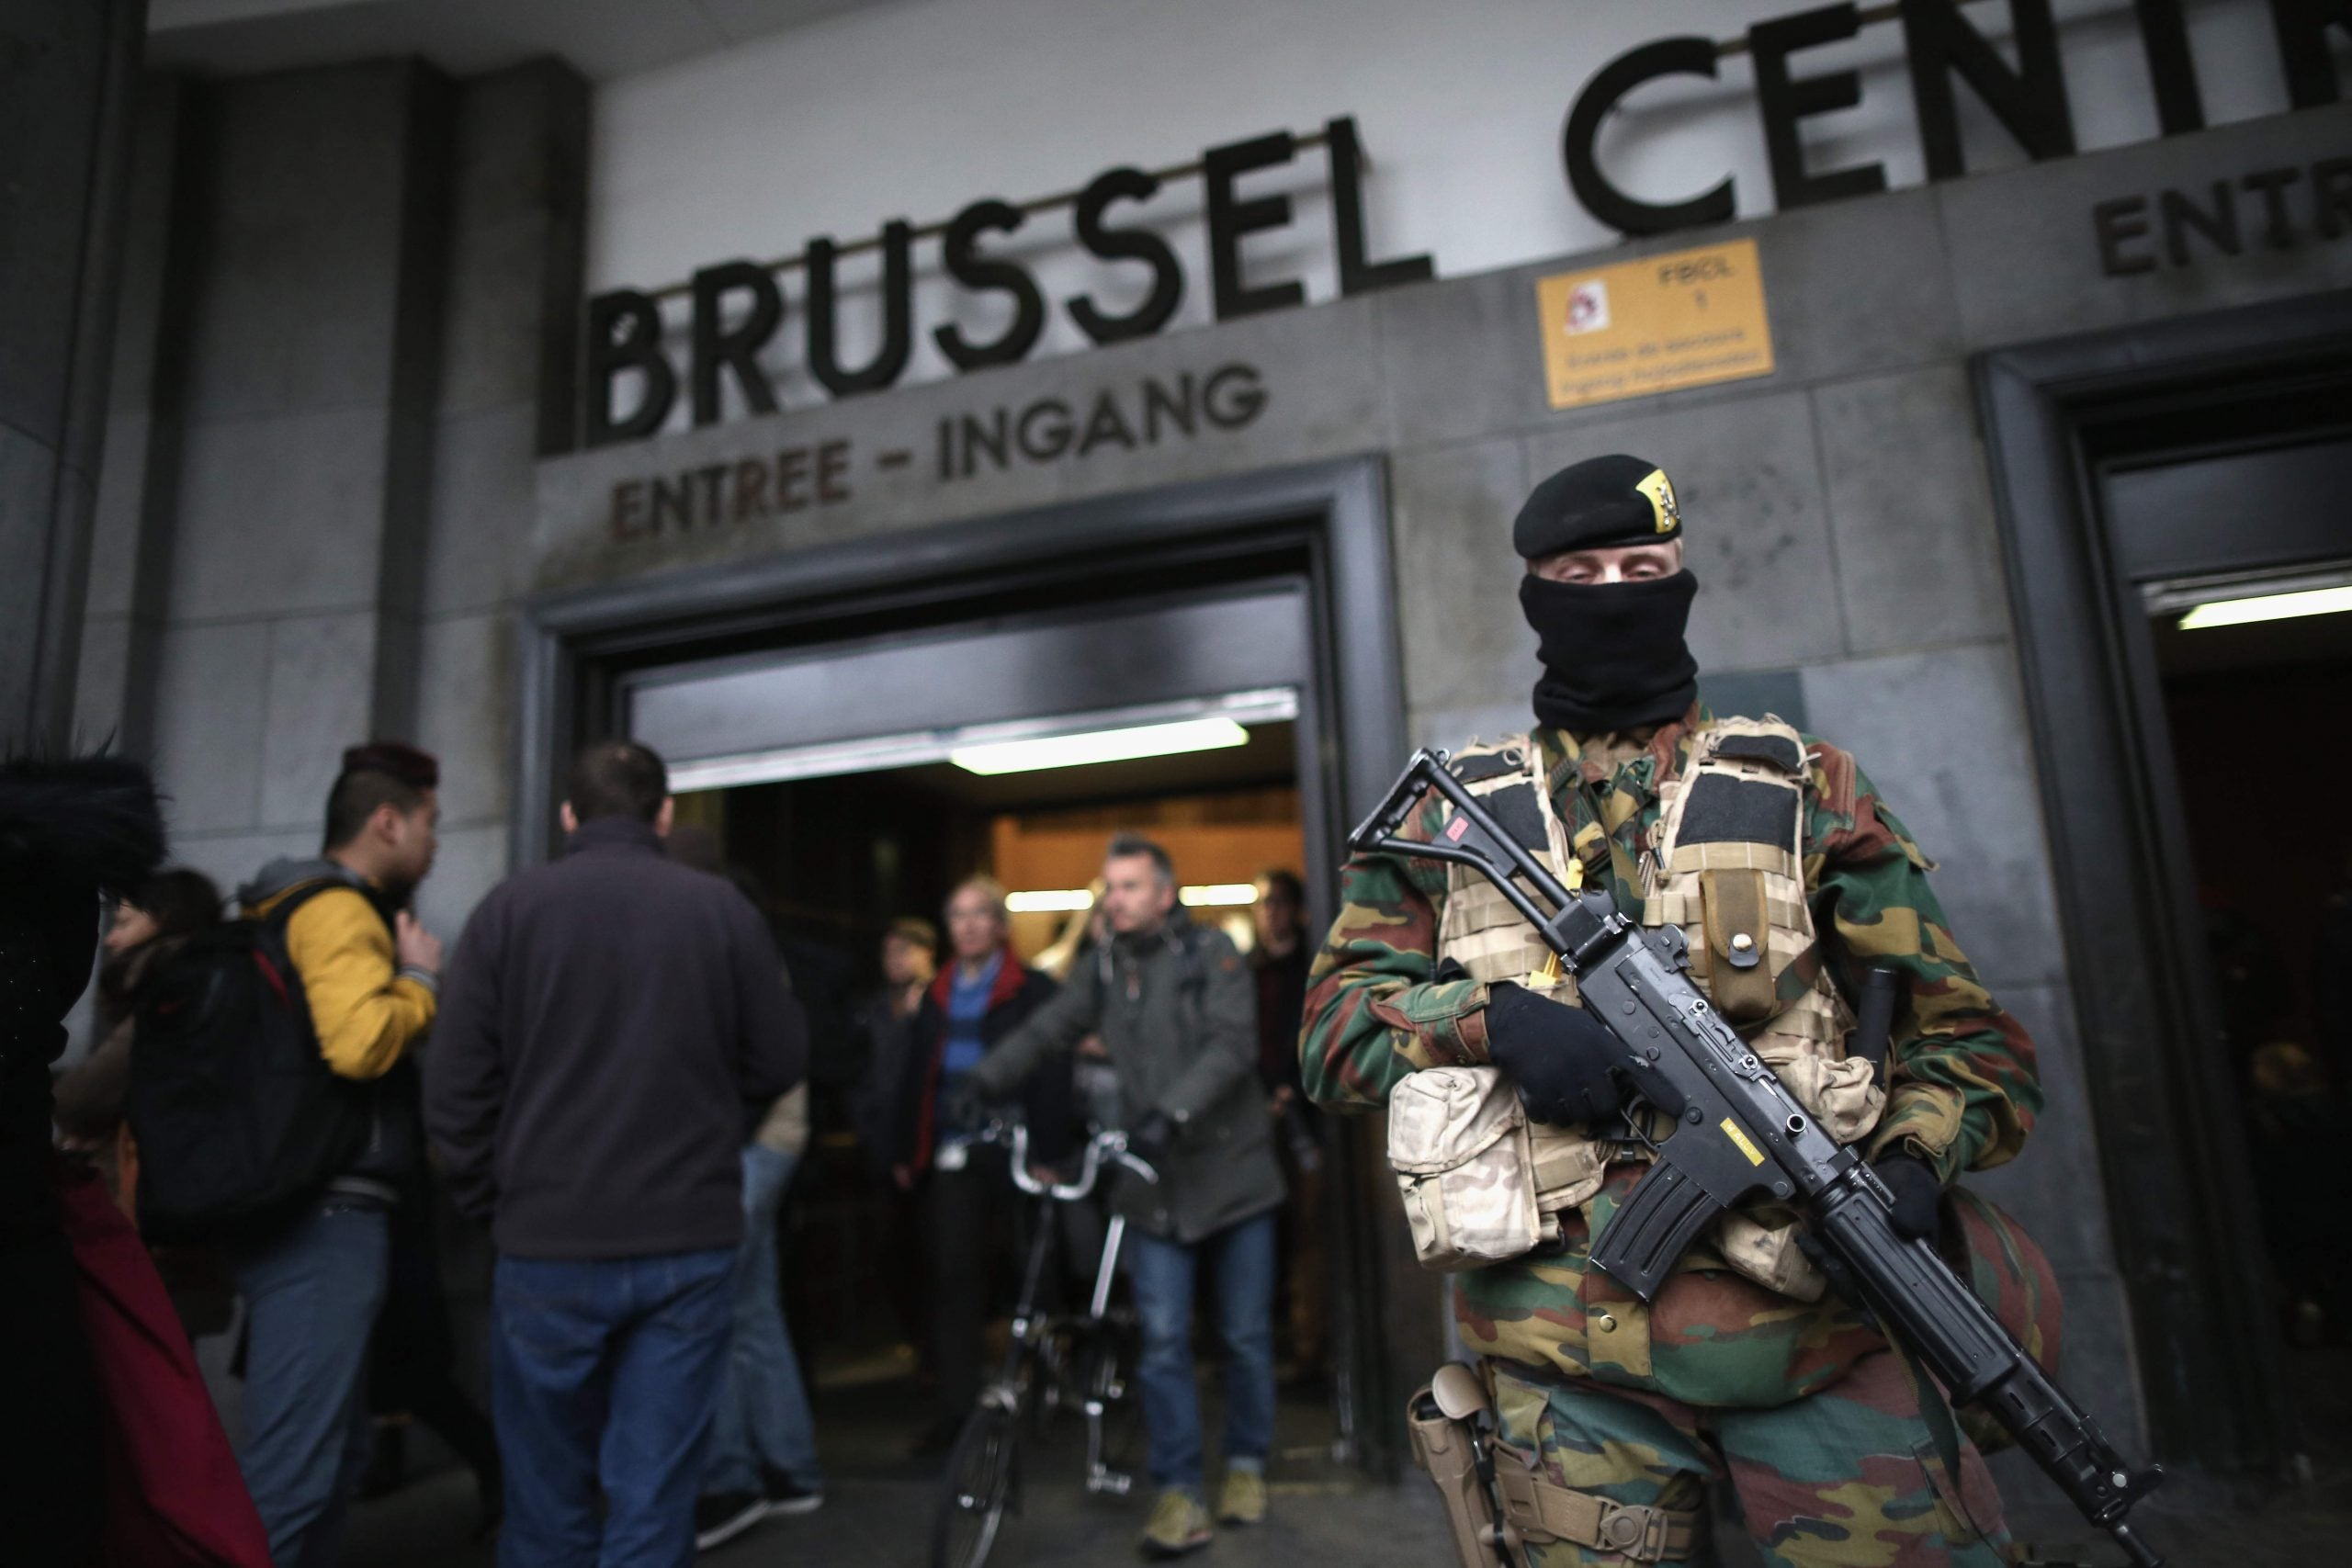 After the Brussels attacks, these are the lessons Belgium will not learn